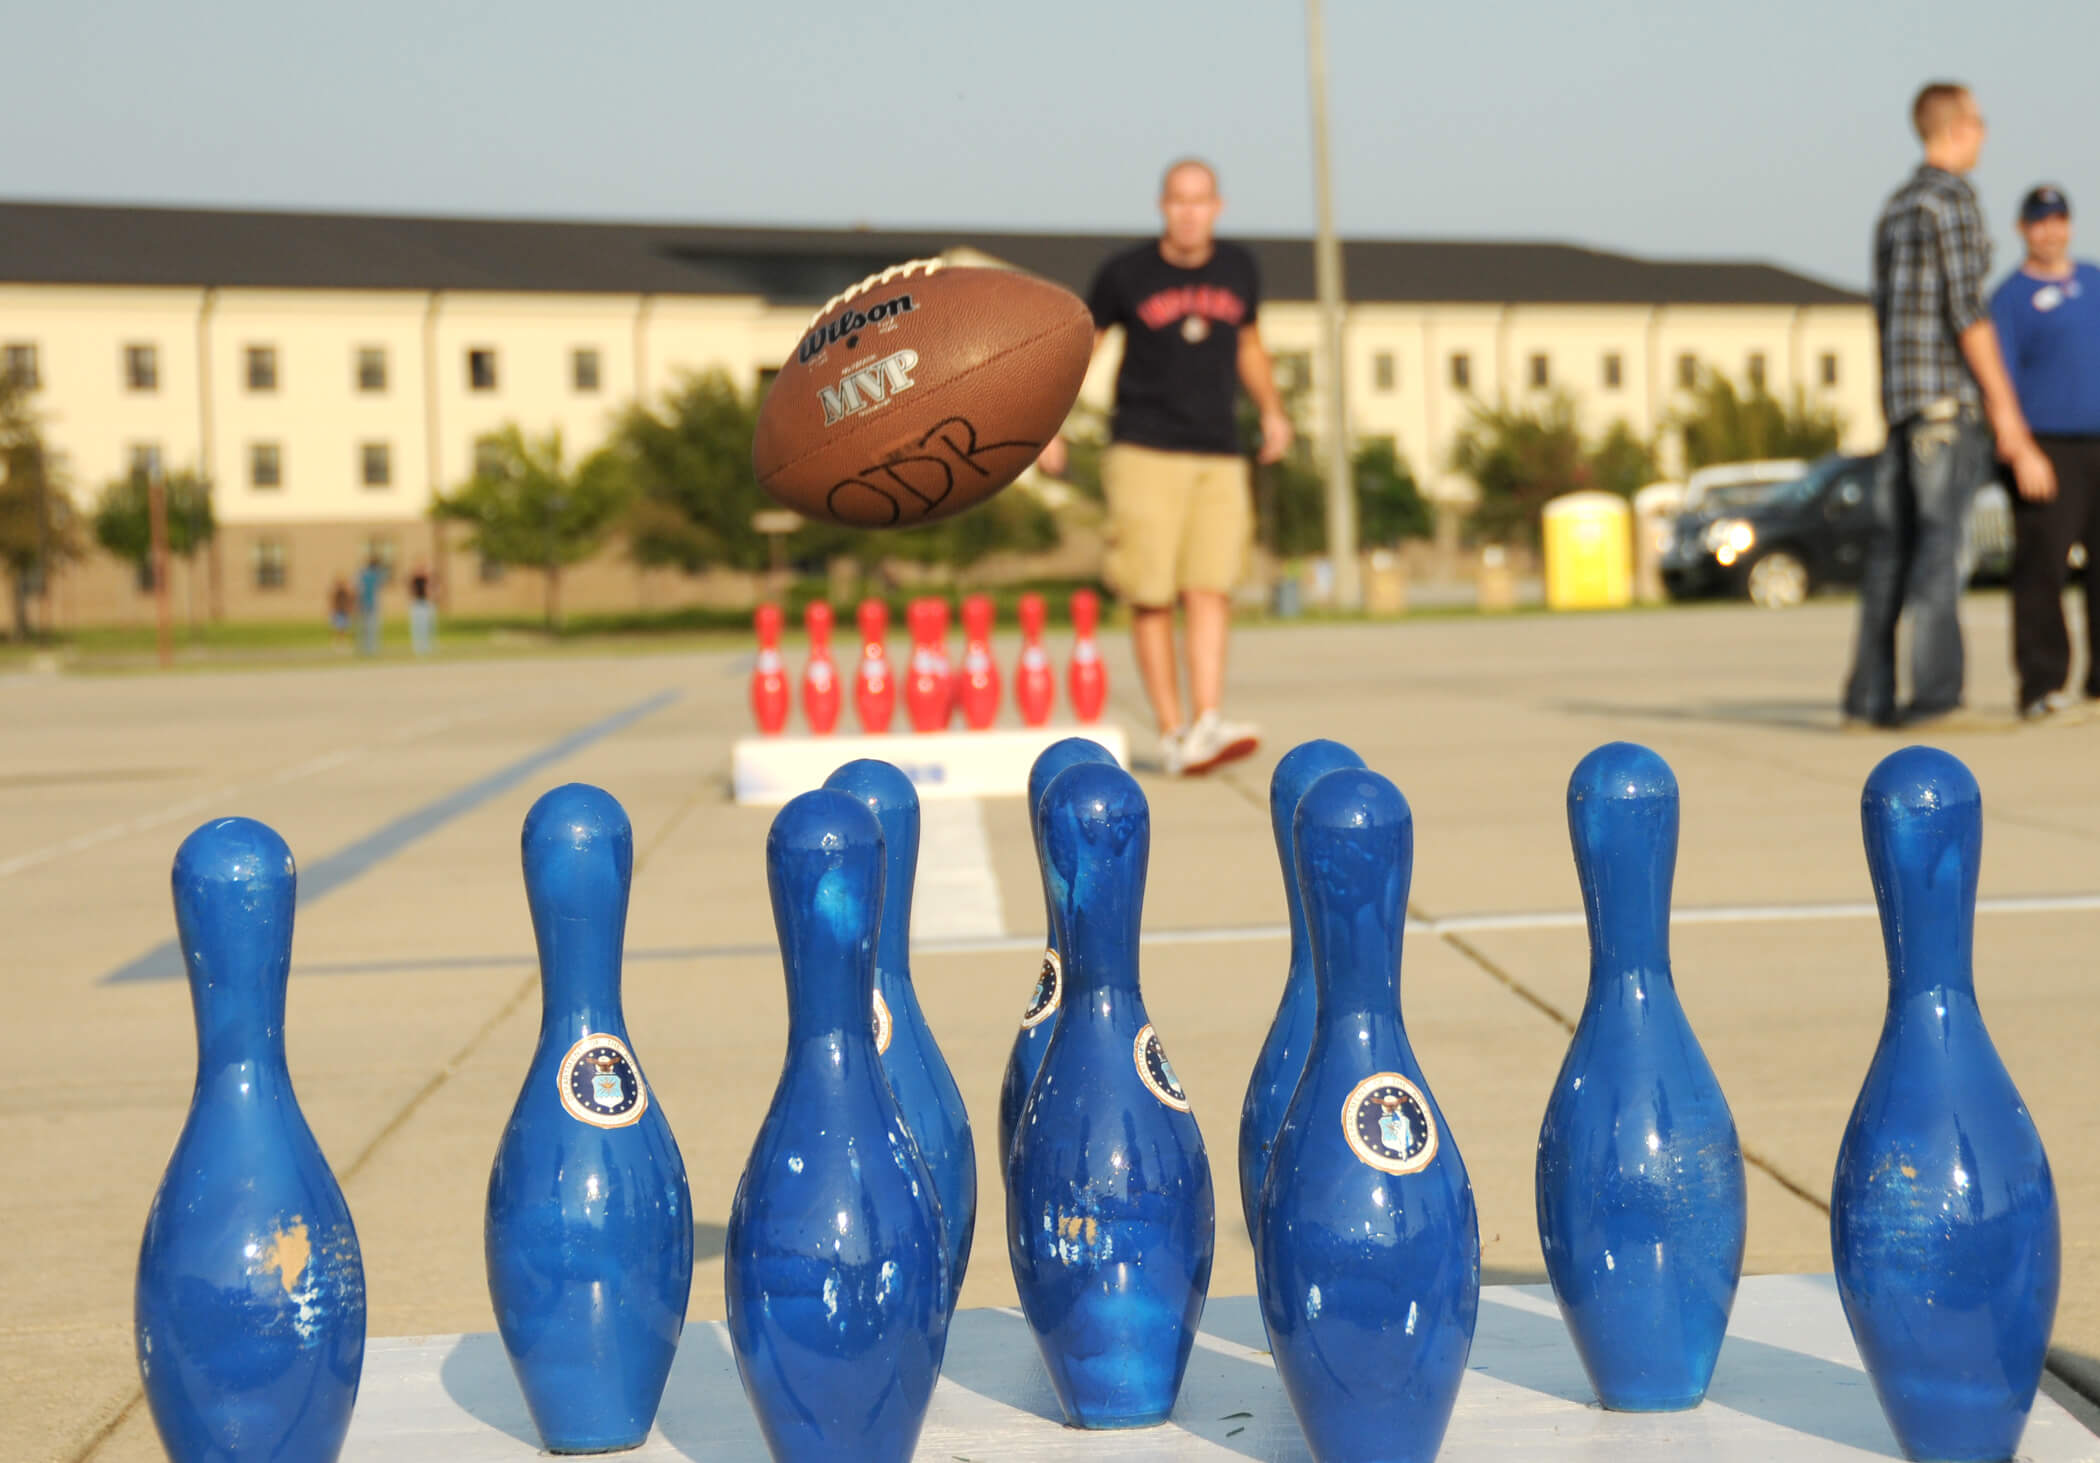 Fowling tailgate game